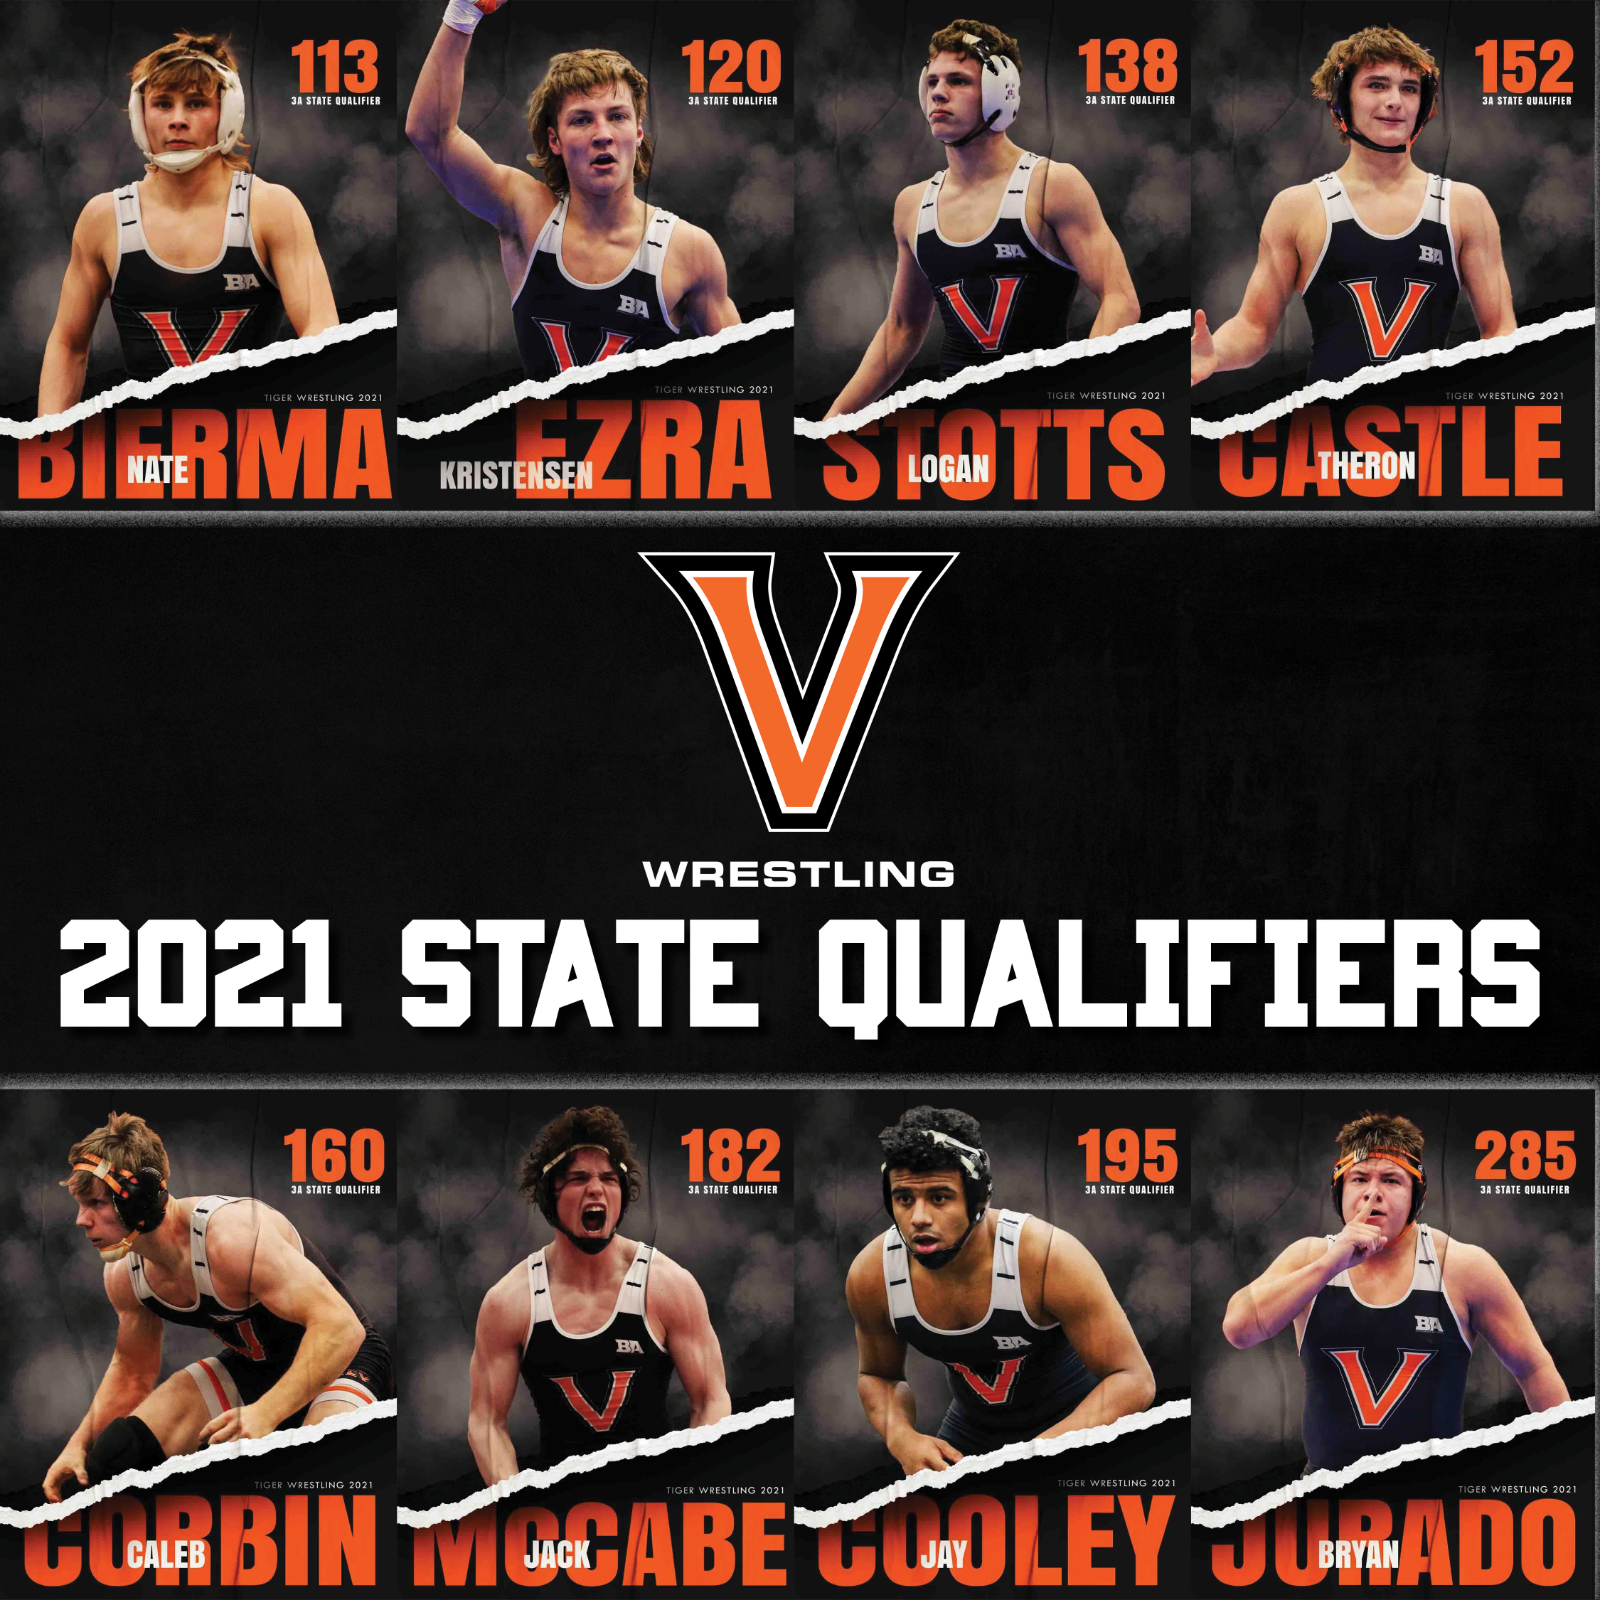 valley state qualifiers graphic